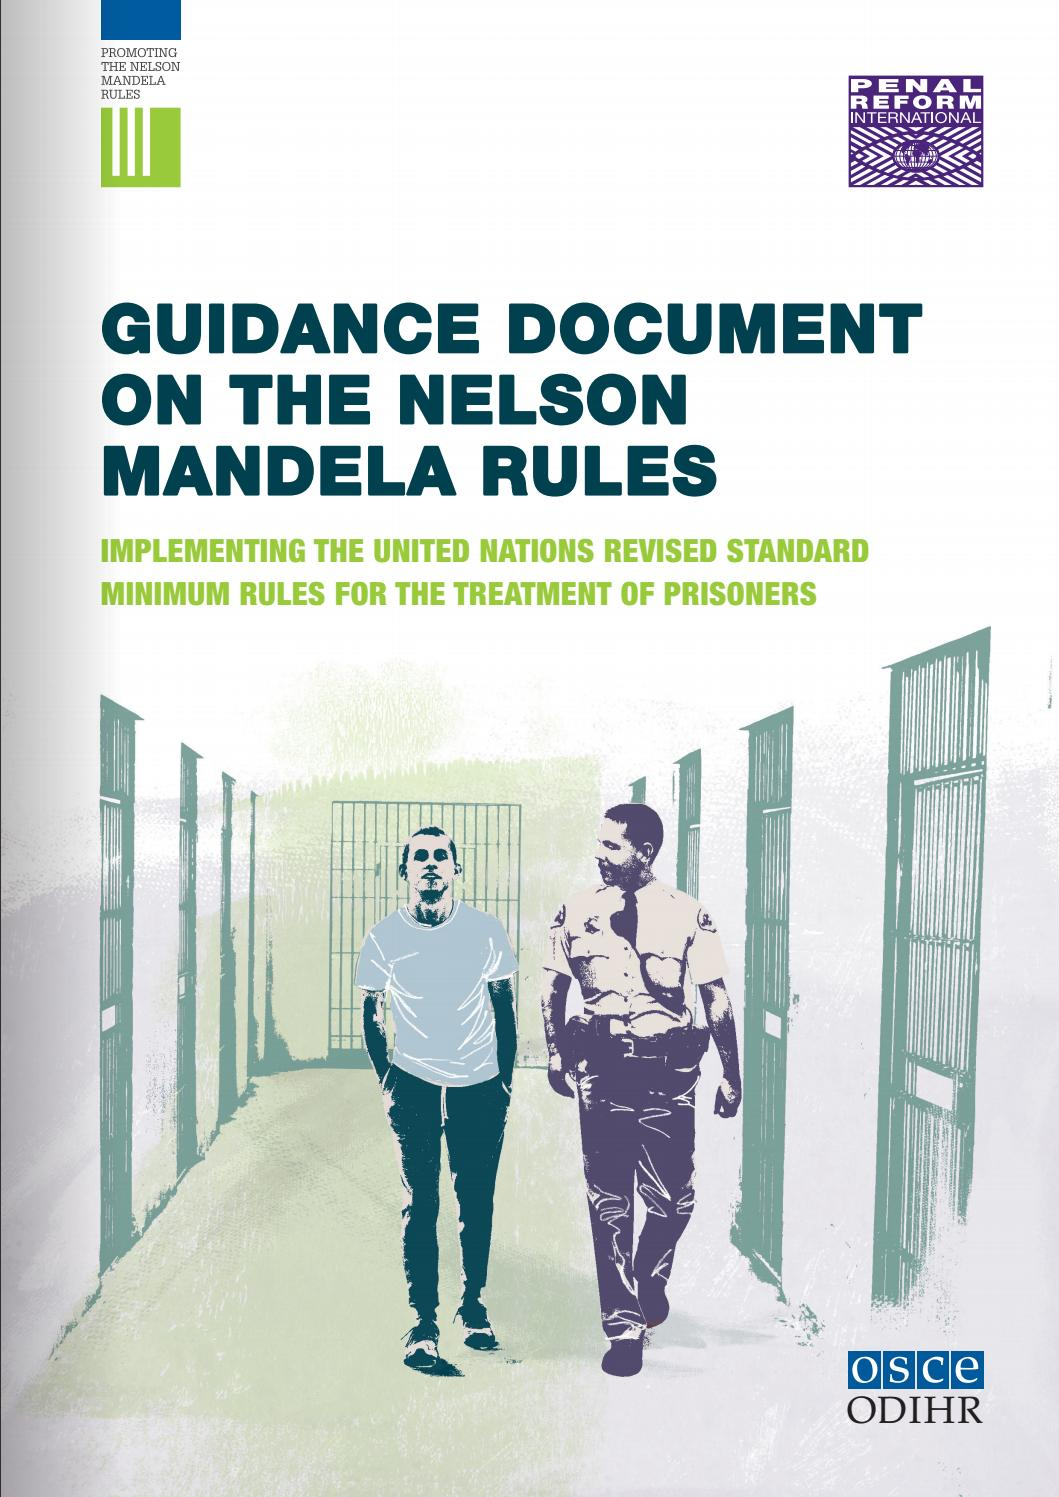 Guidance Document on the Nelson Mandela Rules (186 pages) by